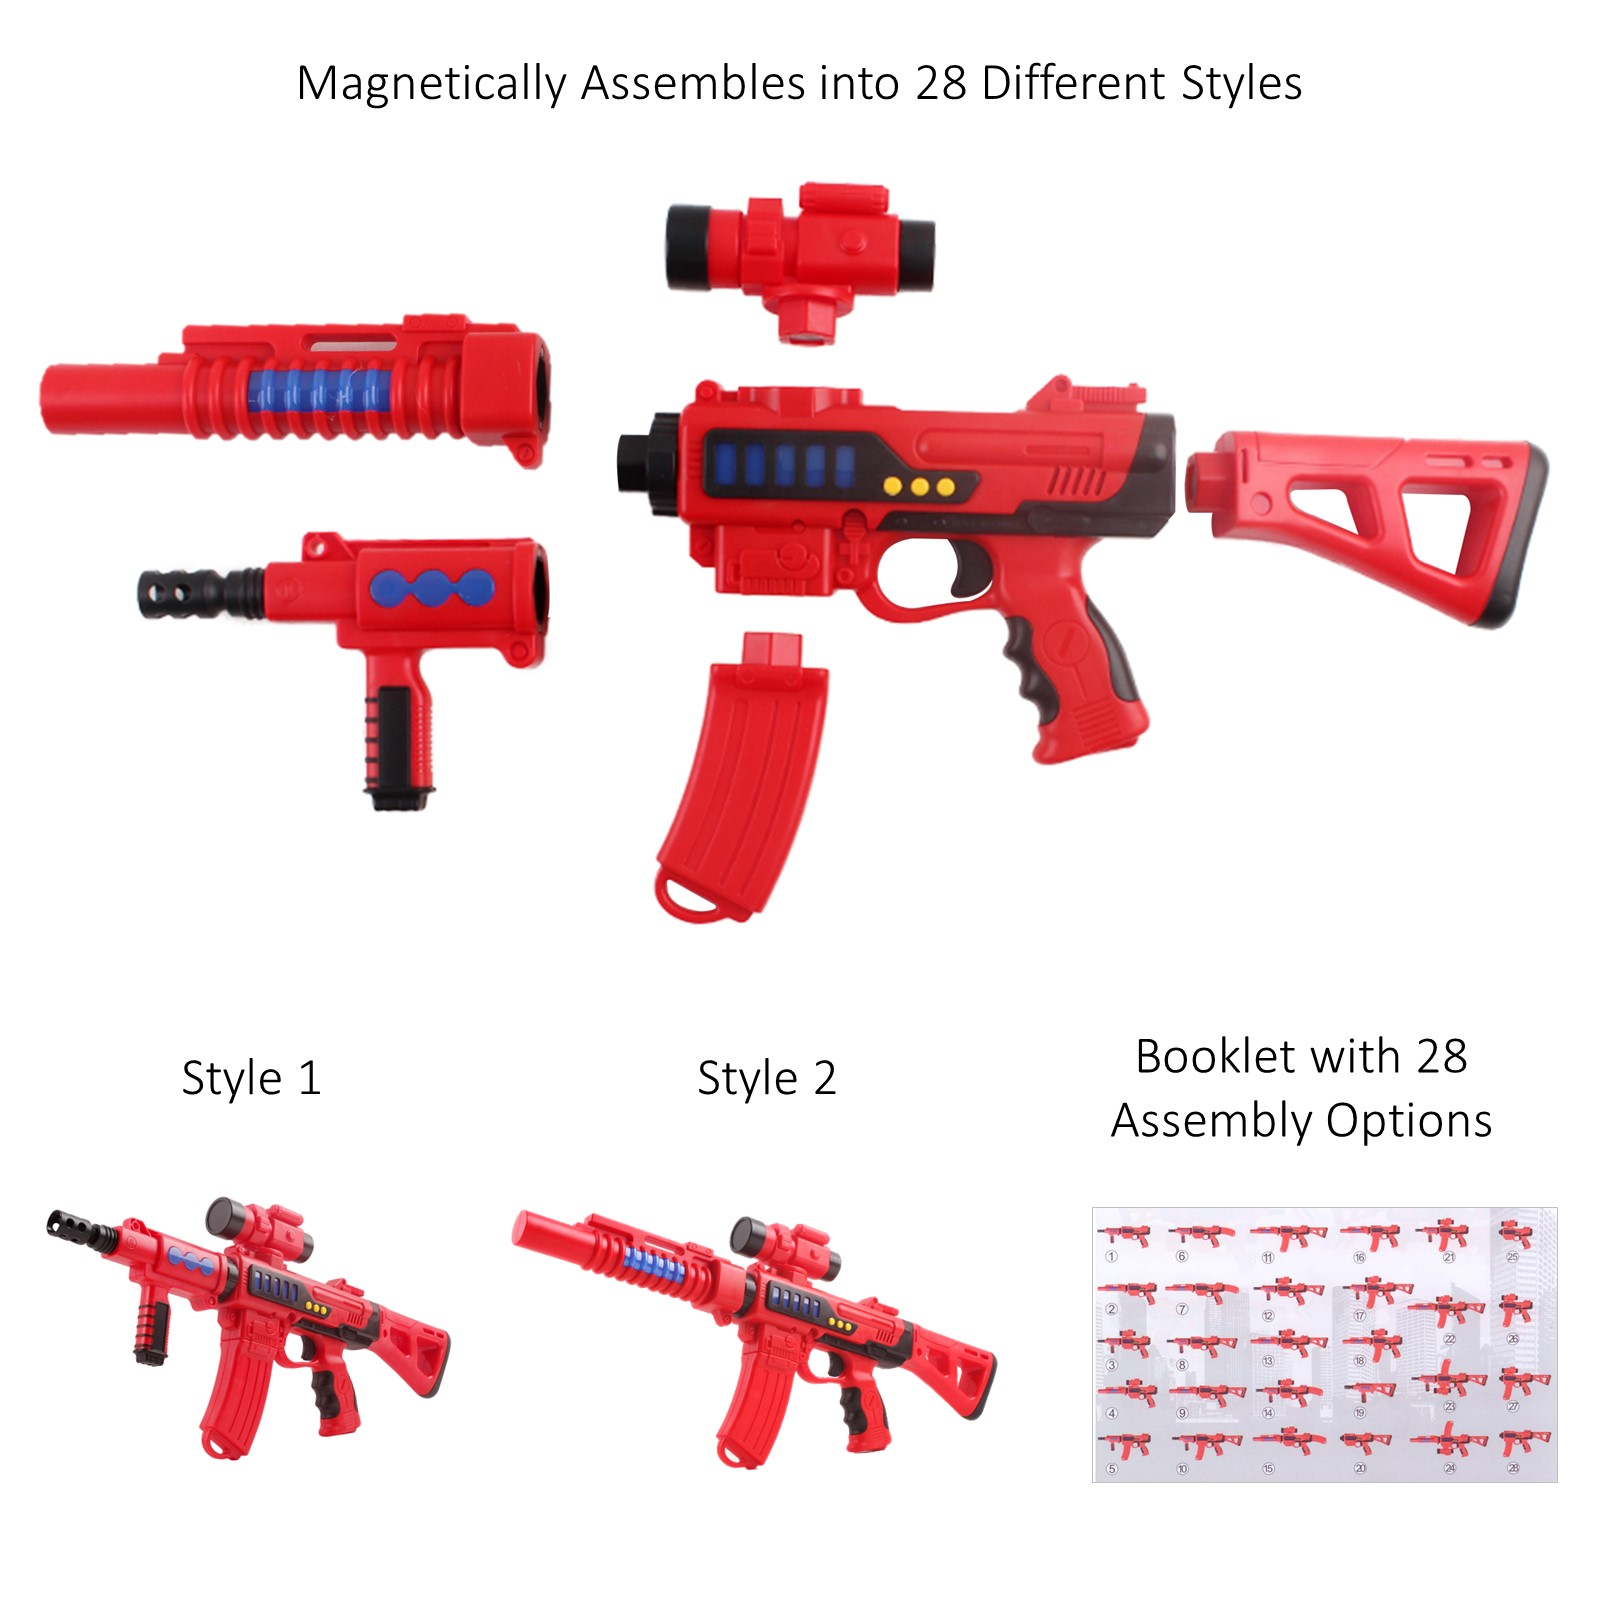 6 Piece Take Apart Gun With Lights And Sounds Scope Featuring 28 Build Options Magnetic Assembly Fun Pretend Play Creative Imagination Building Construction Rifle Action Toys For Children Boys